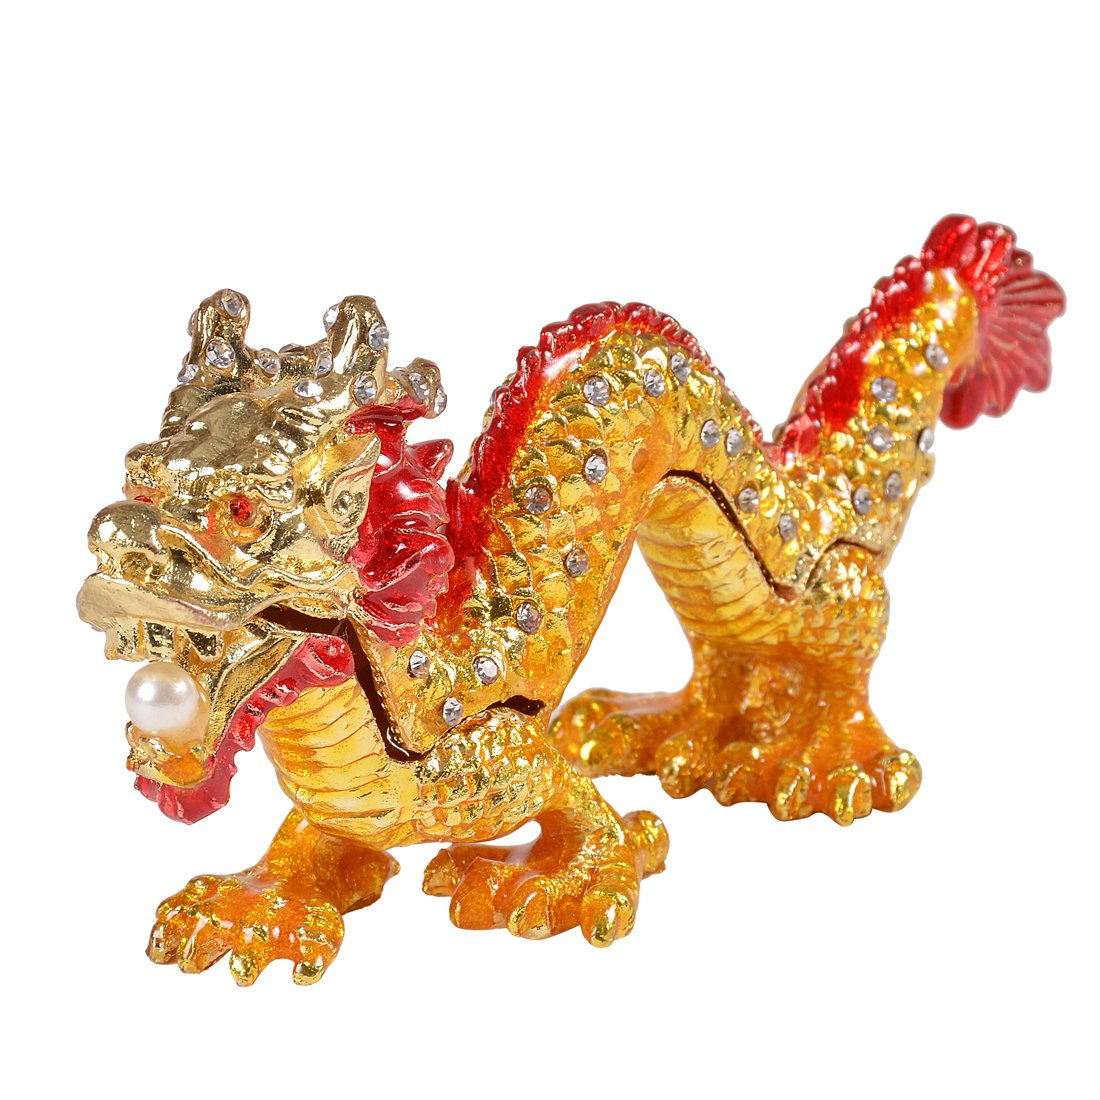 MICG Asian Dragon Trinket Box Hand Painted Animal Figurine Collection Ring Holder